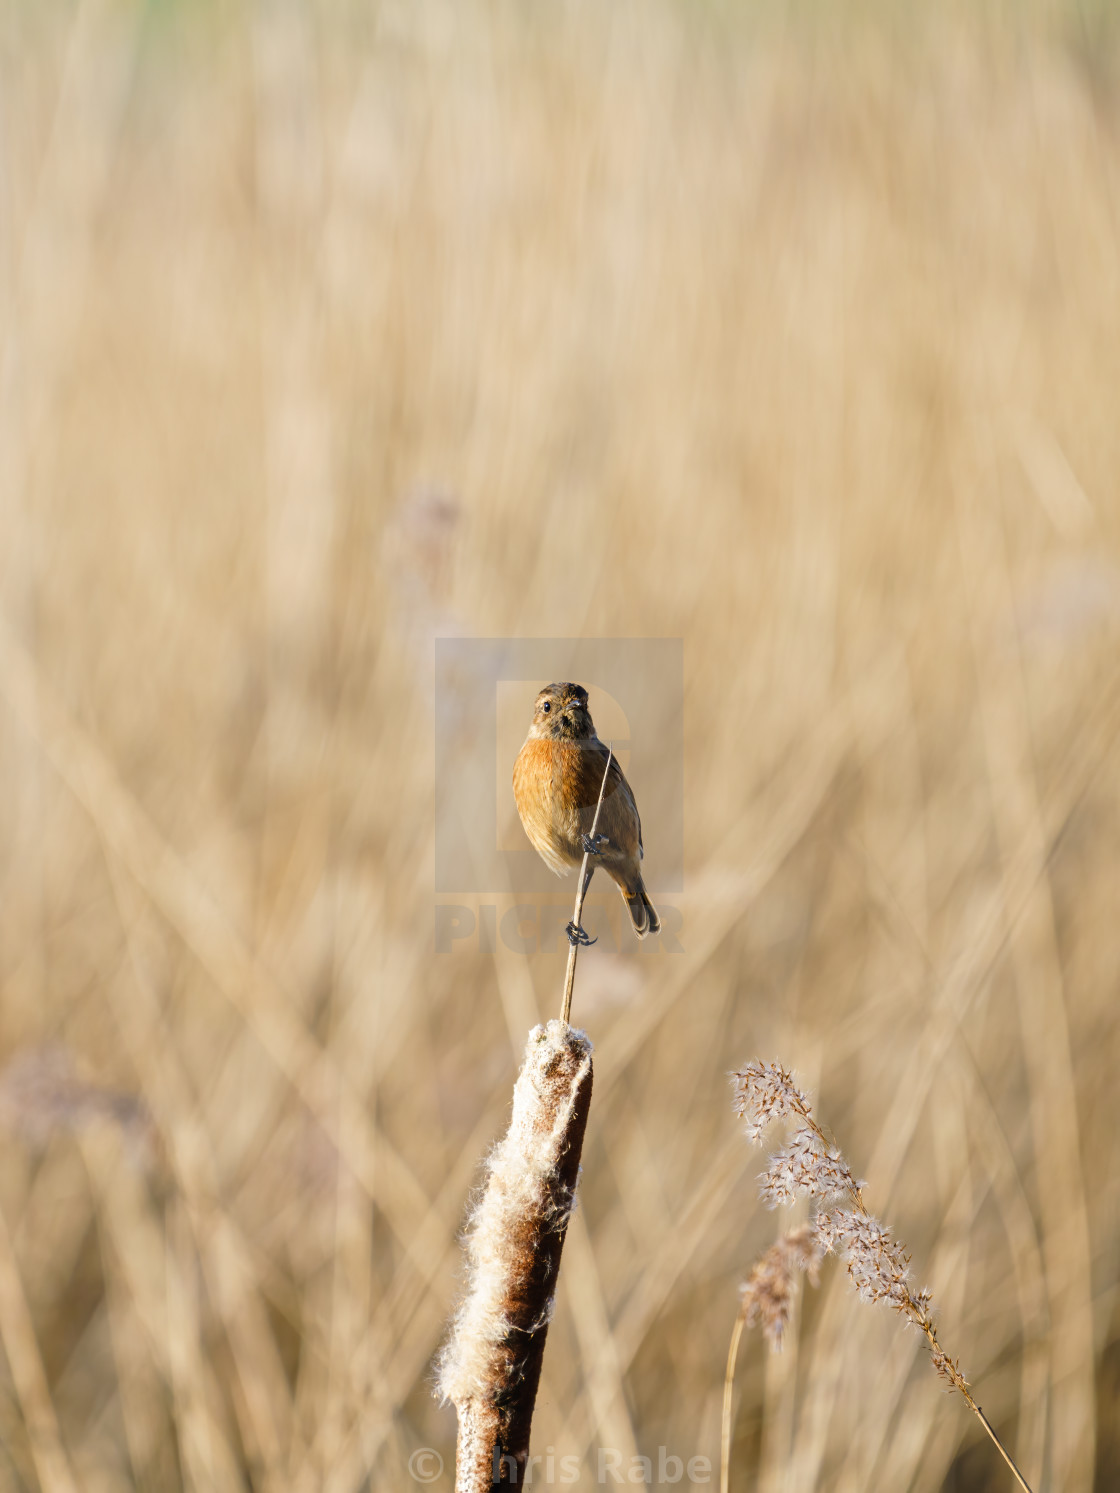 """Female Stonechat (Saxicola torquata) on a reed, taken in the UK"" stock image"